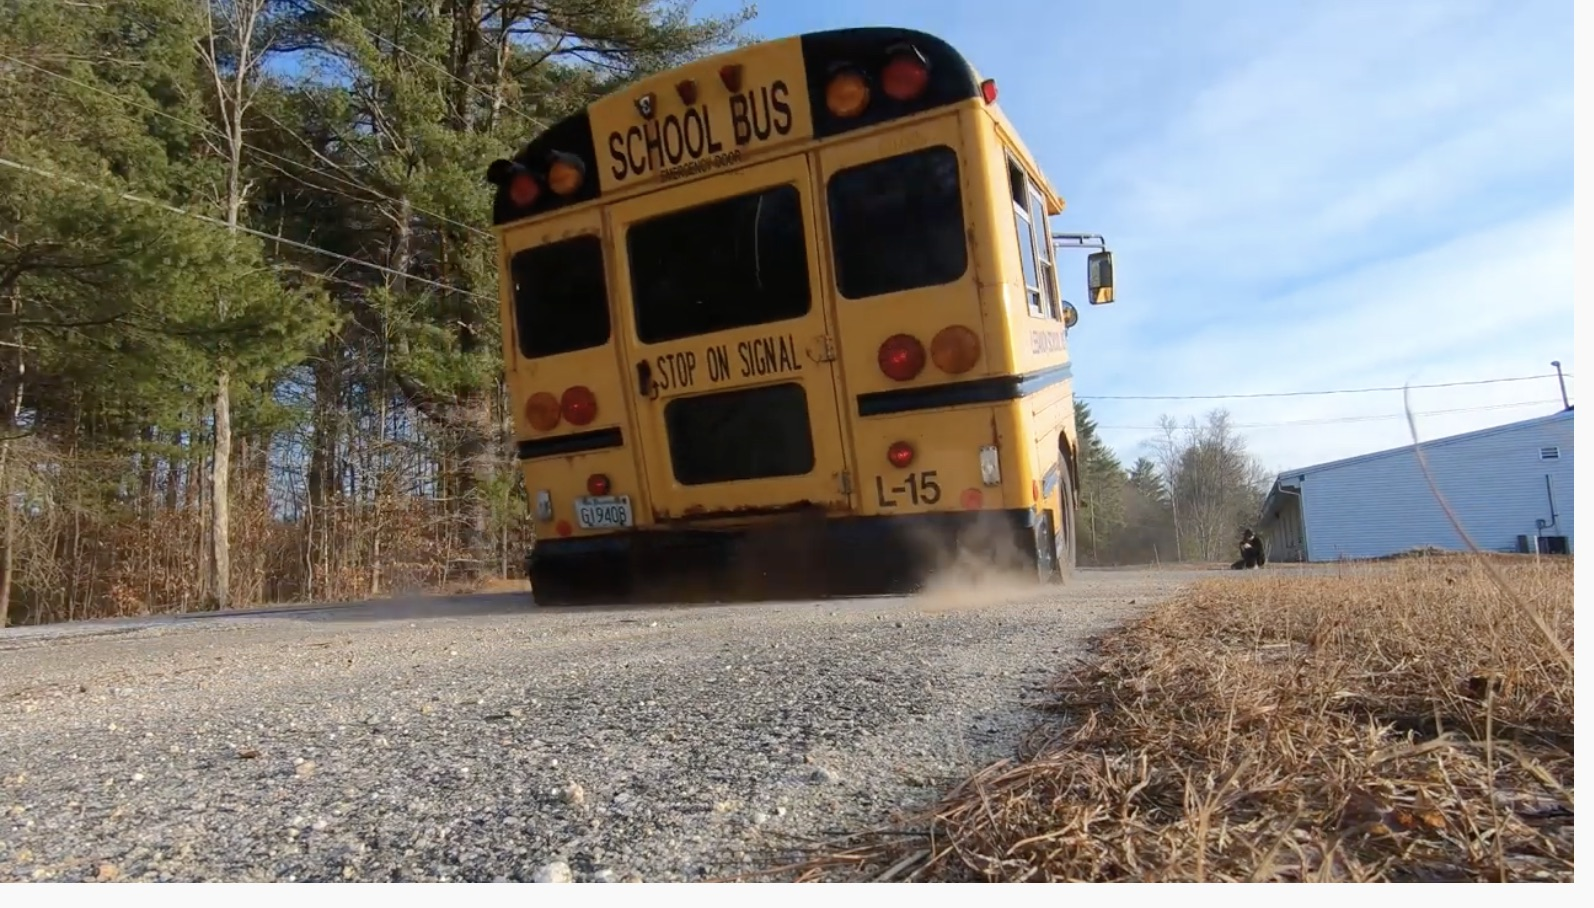 Hey Kids, Watch This! A Twin-Turbo Wheelstanding Short Bus For The Hell Of It!